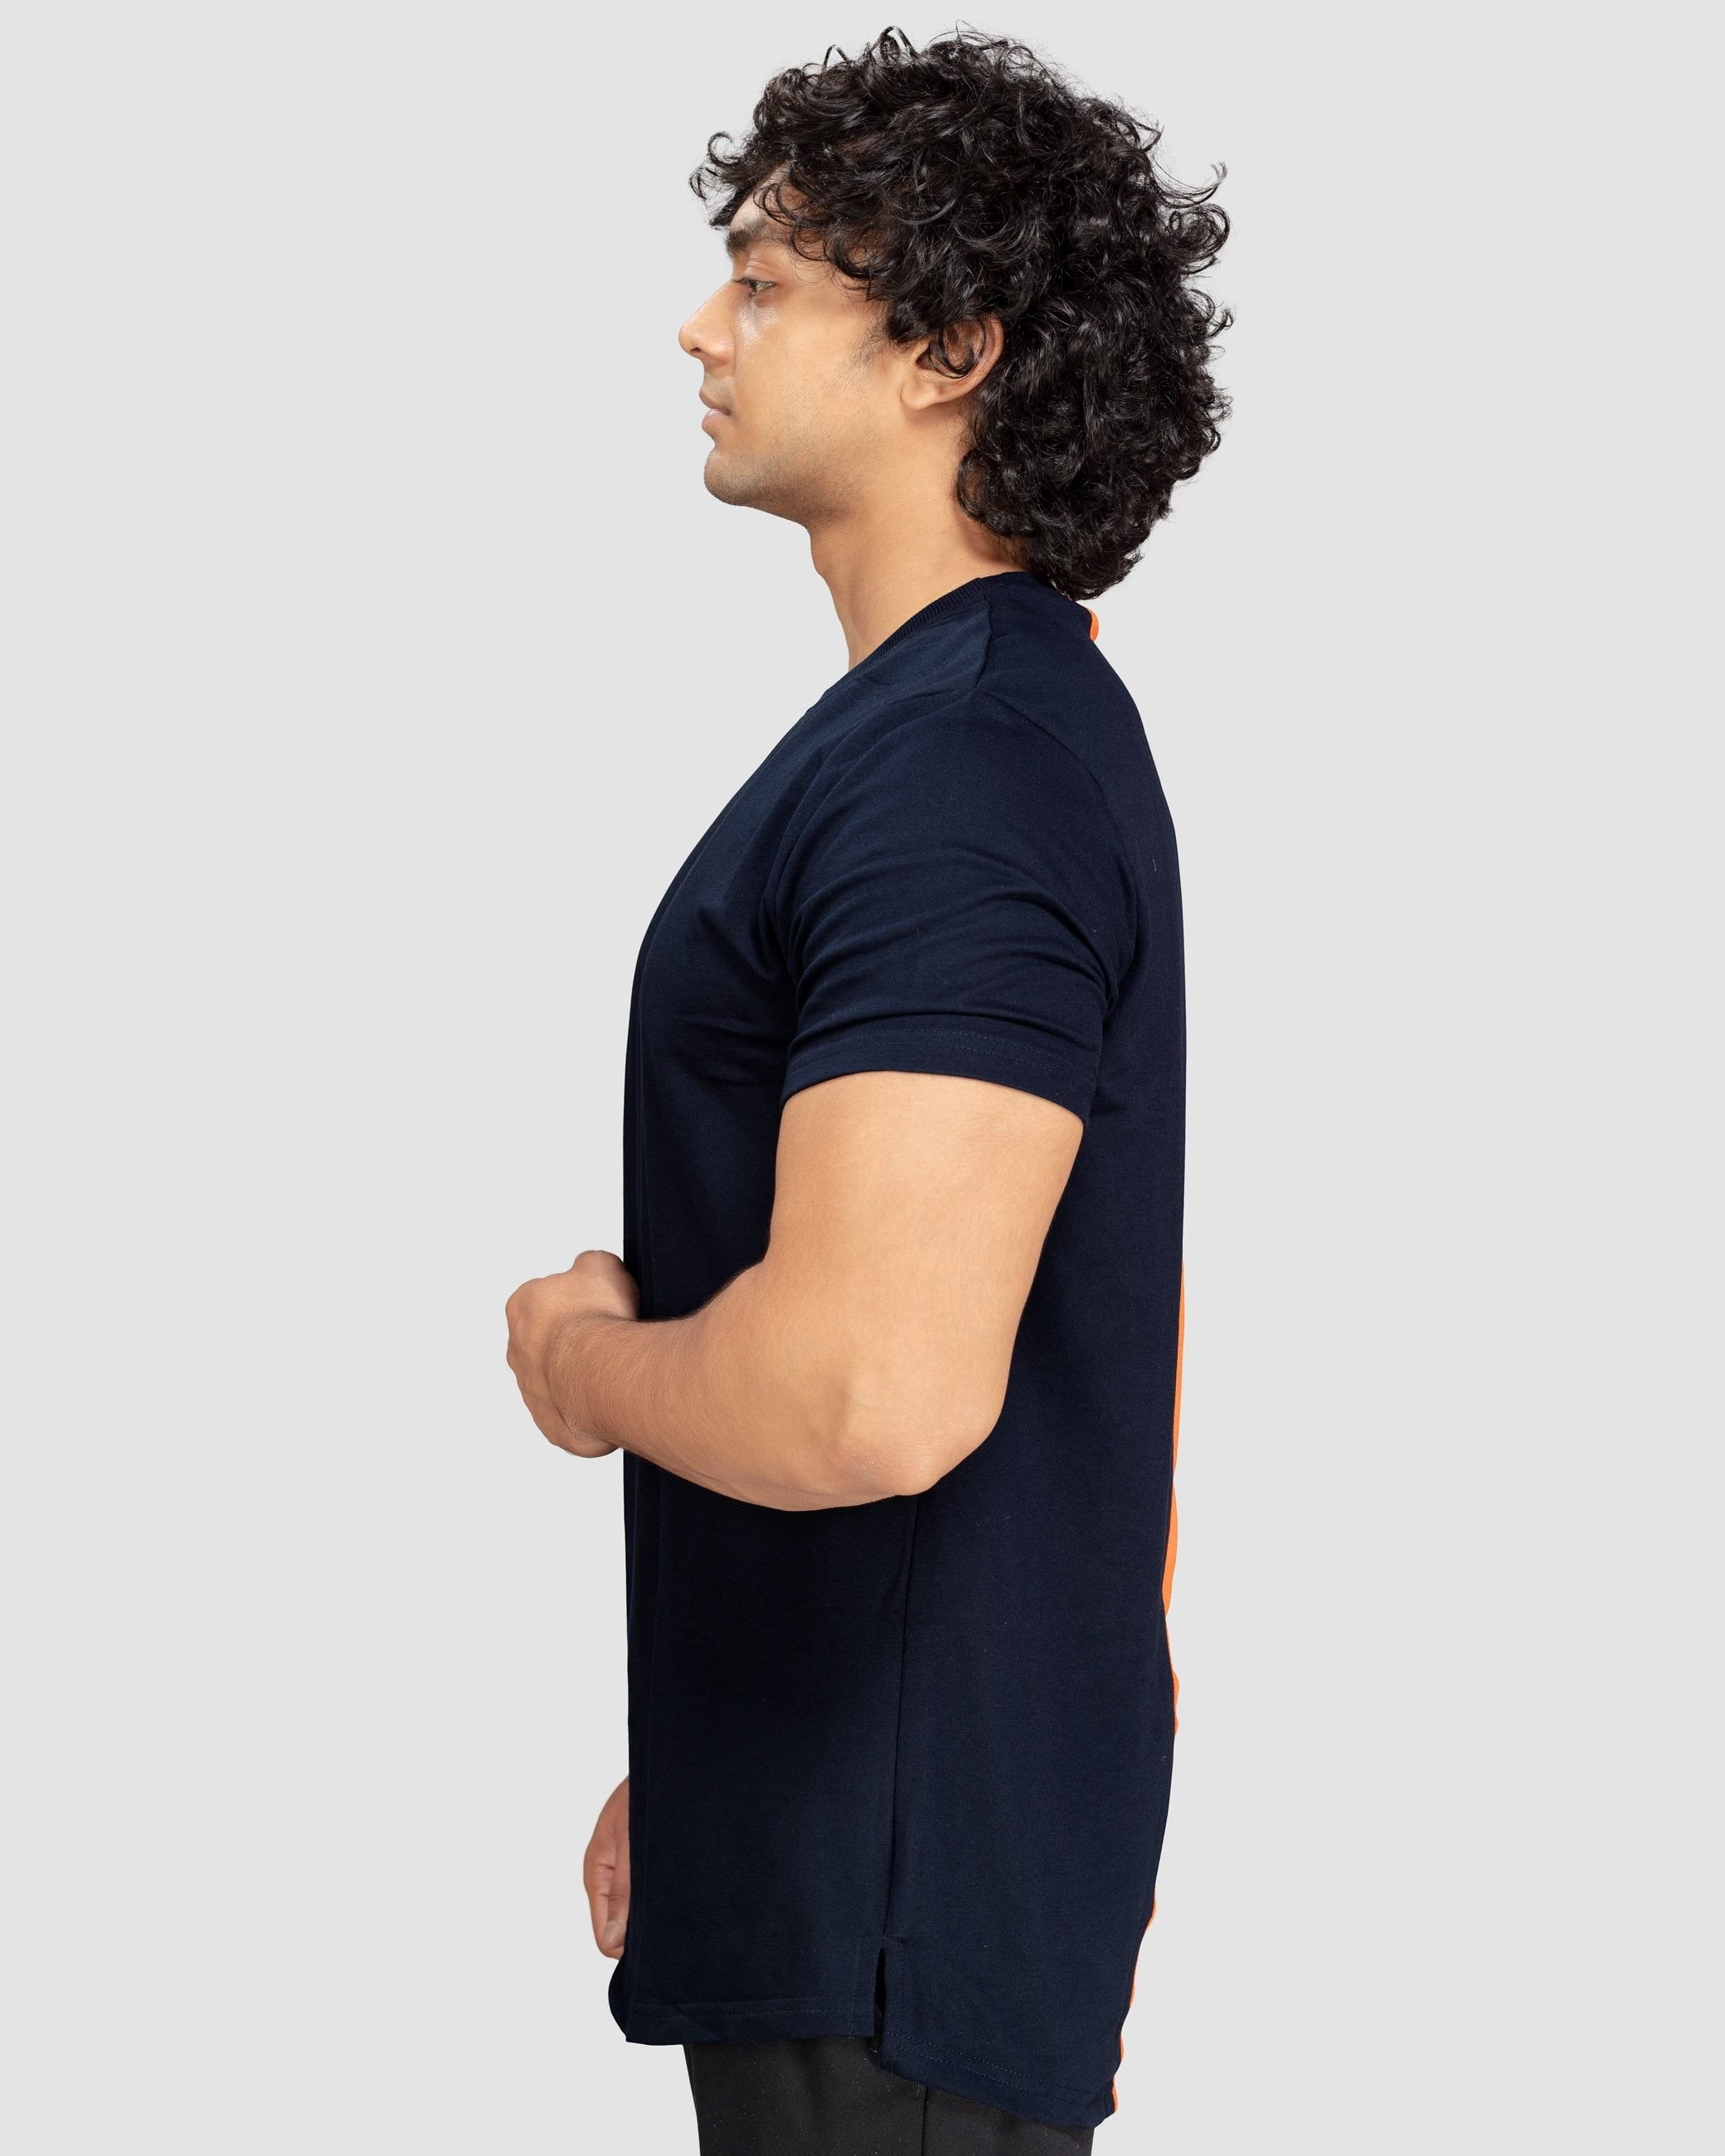 Flex Leisure Longline t-shirt(Navy Blue) Athflex